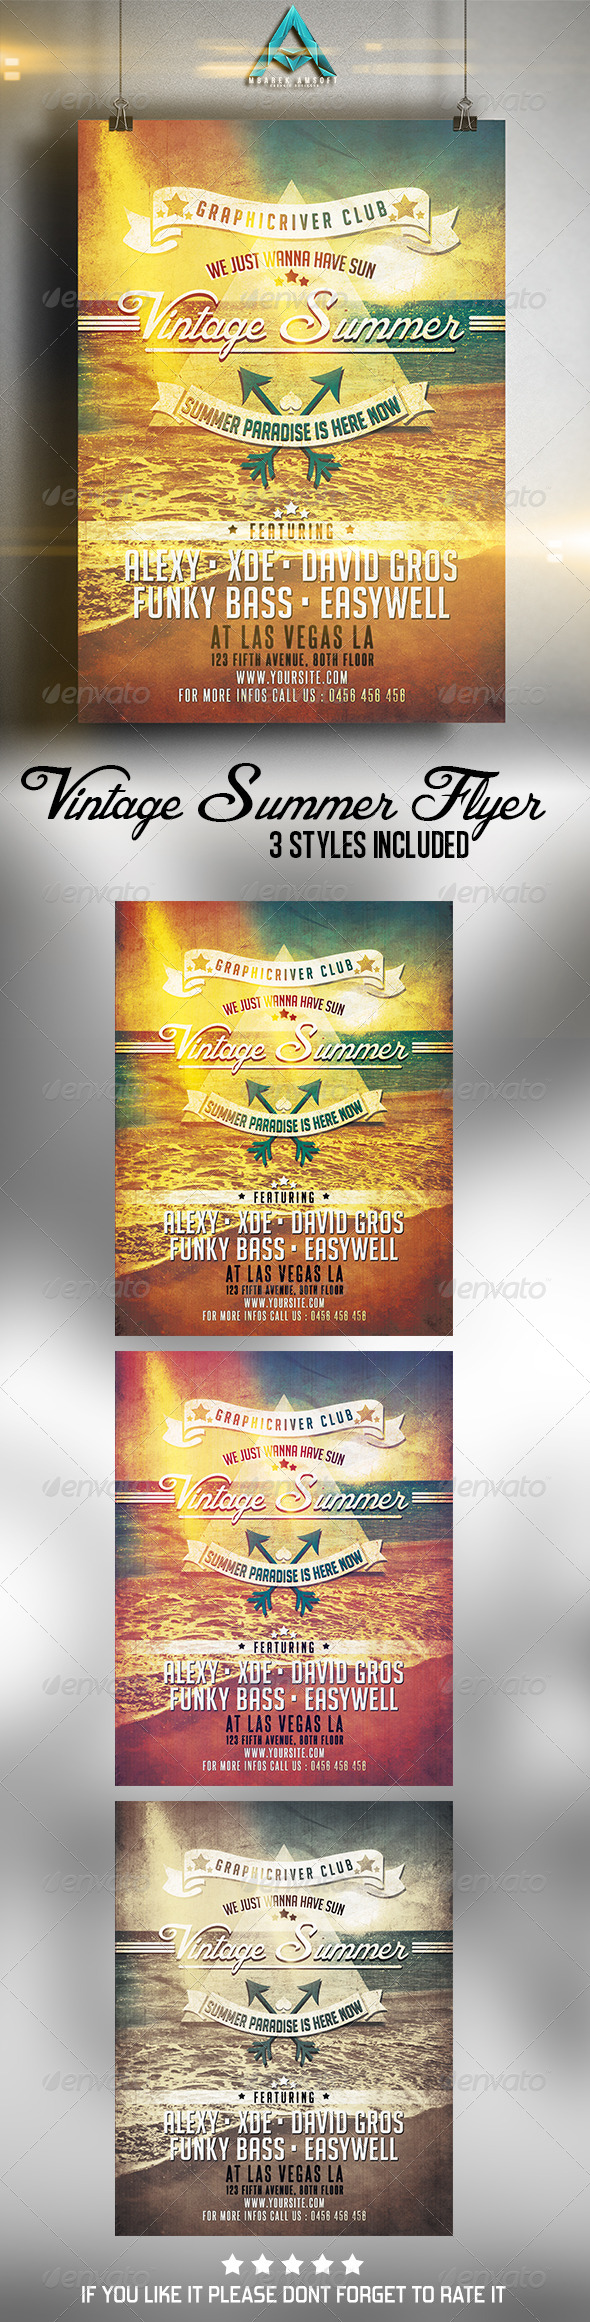 GraphicRiver Vintage Summer Flyer 7495645